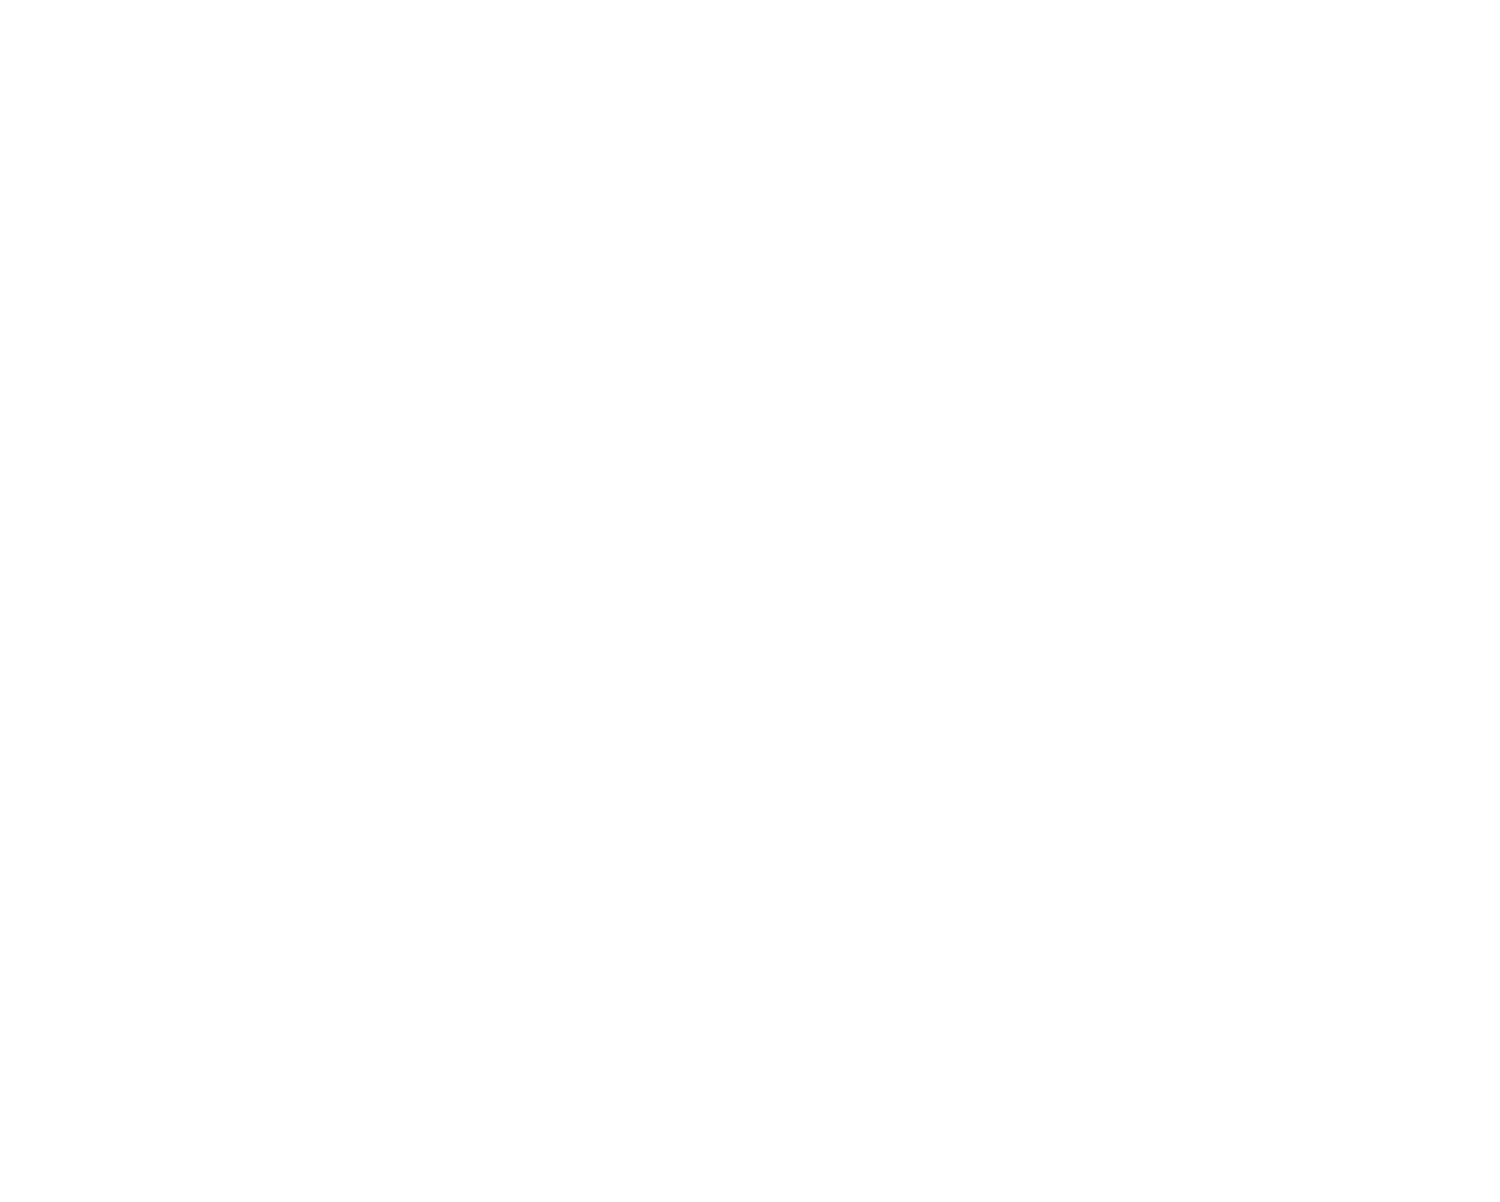 Dr. Harry Jol